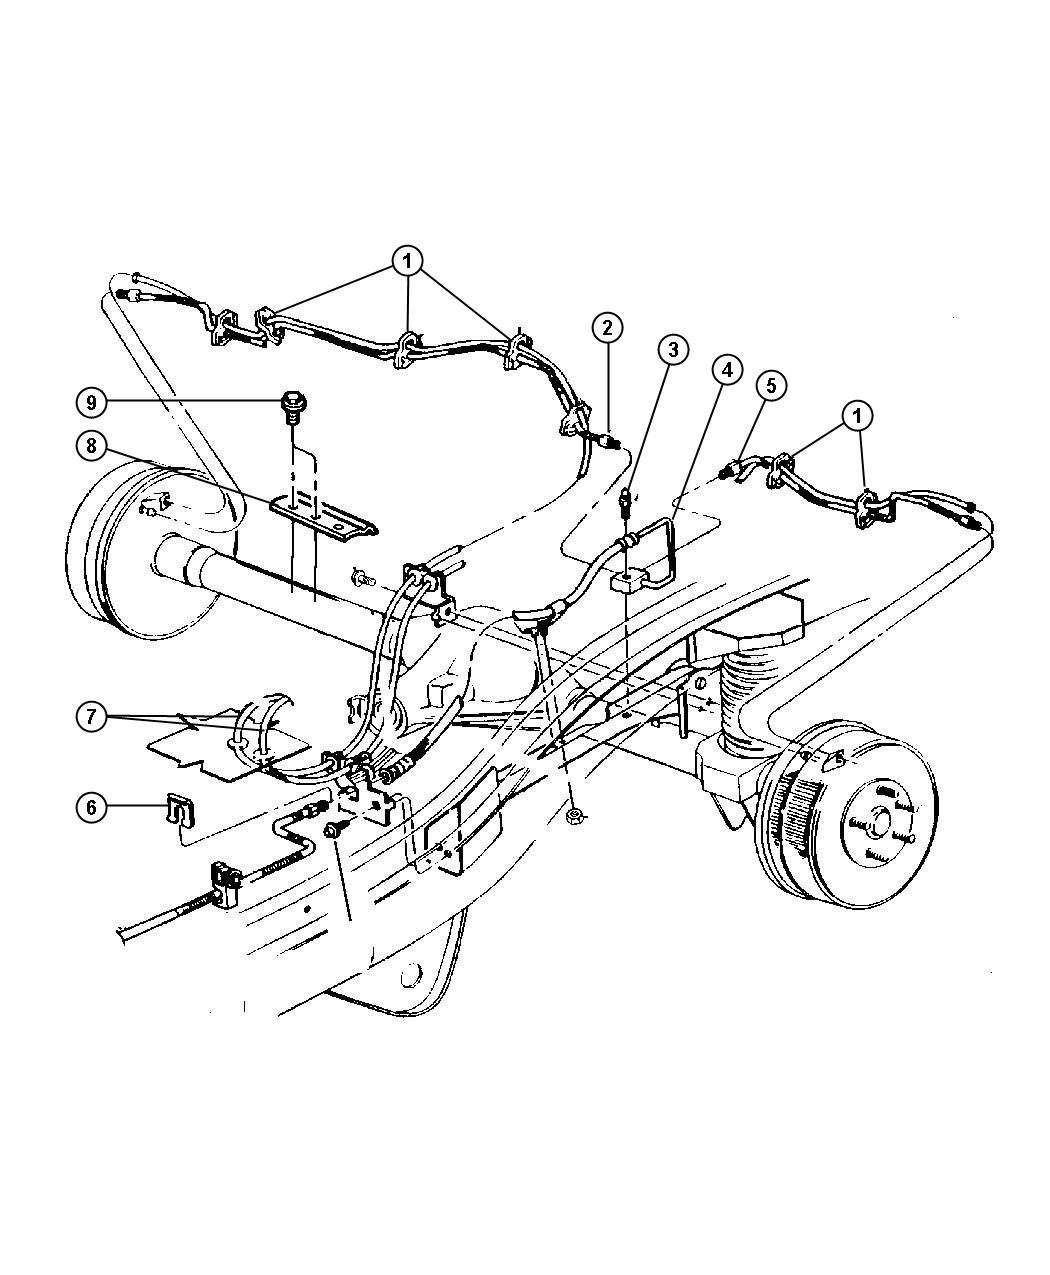 Wiring diagram for a 2001 dodge ram